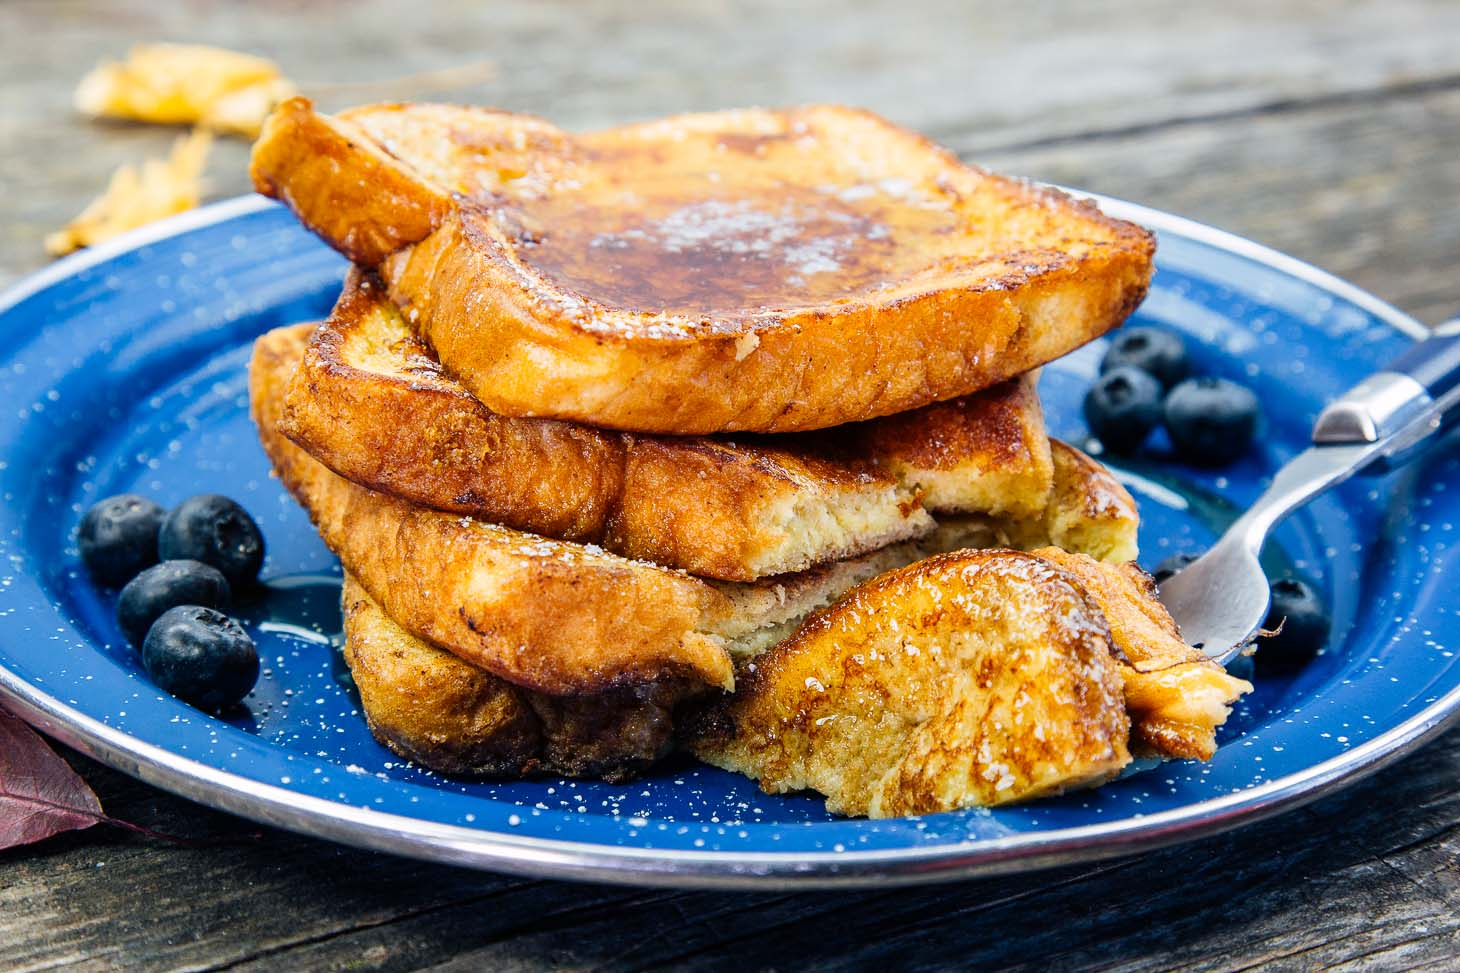 A stack of pumpkin spiced french toast on a blue enamel camping plate.